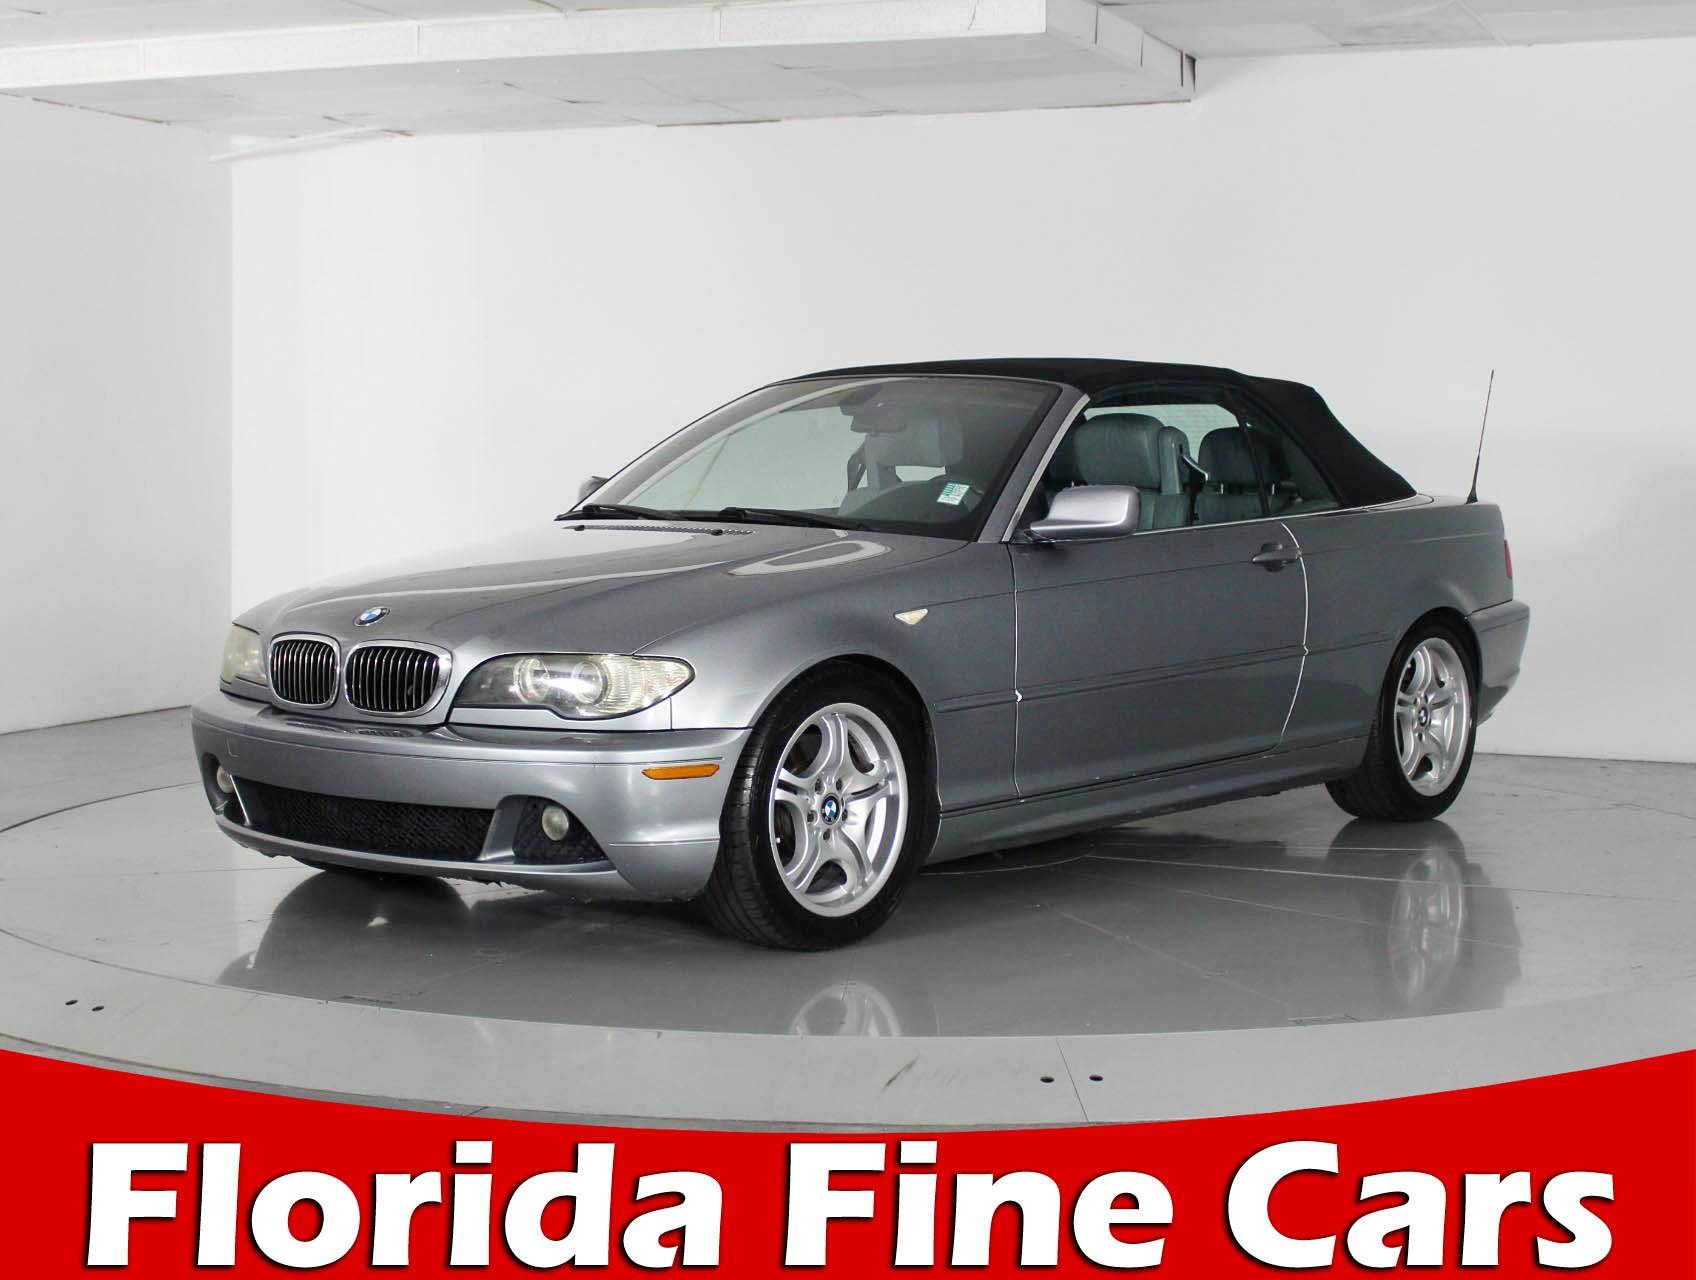 Used 2004 BMW 3 SERIES 330CIC Sedan for sale in WEST PALM FL